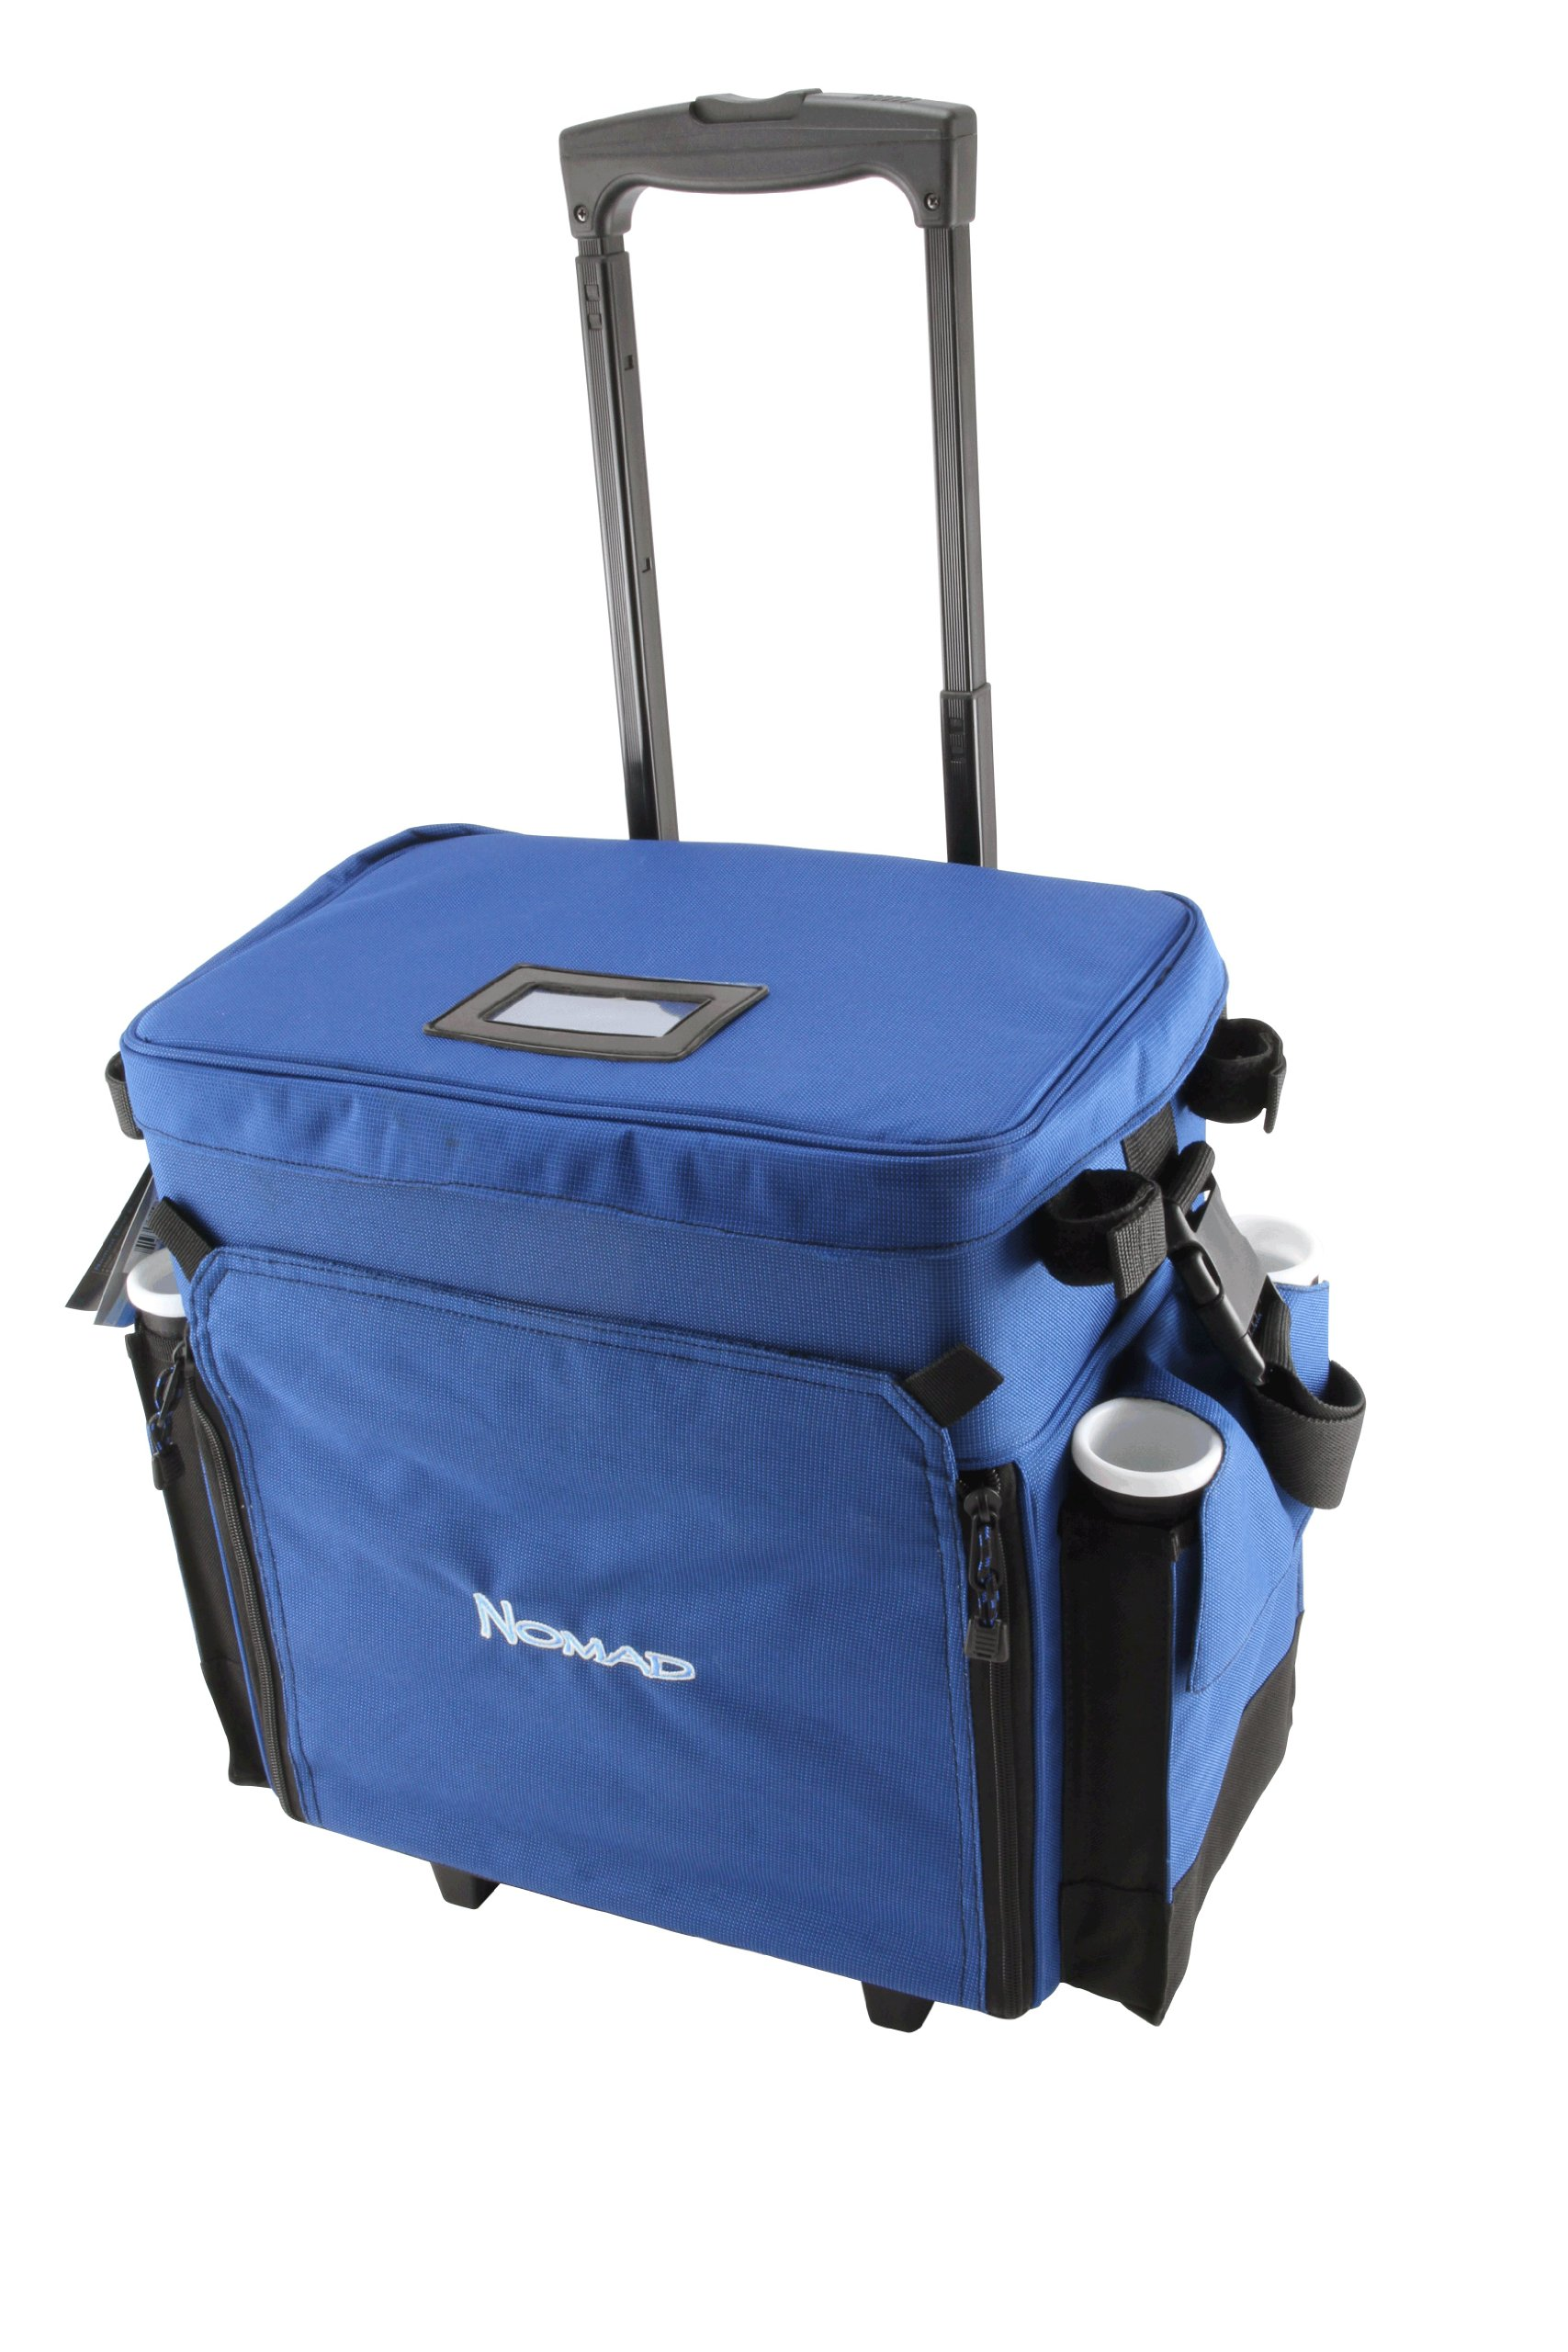 Okuma Nomad Travel Series Tackle Rolling Deck Bag by Okuma